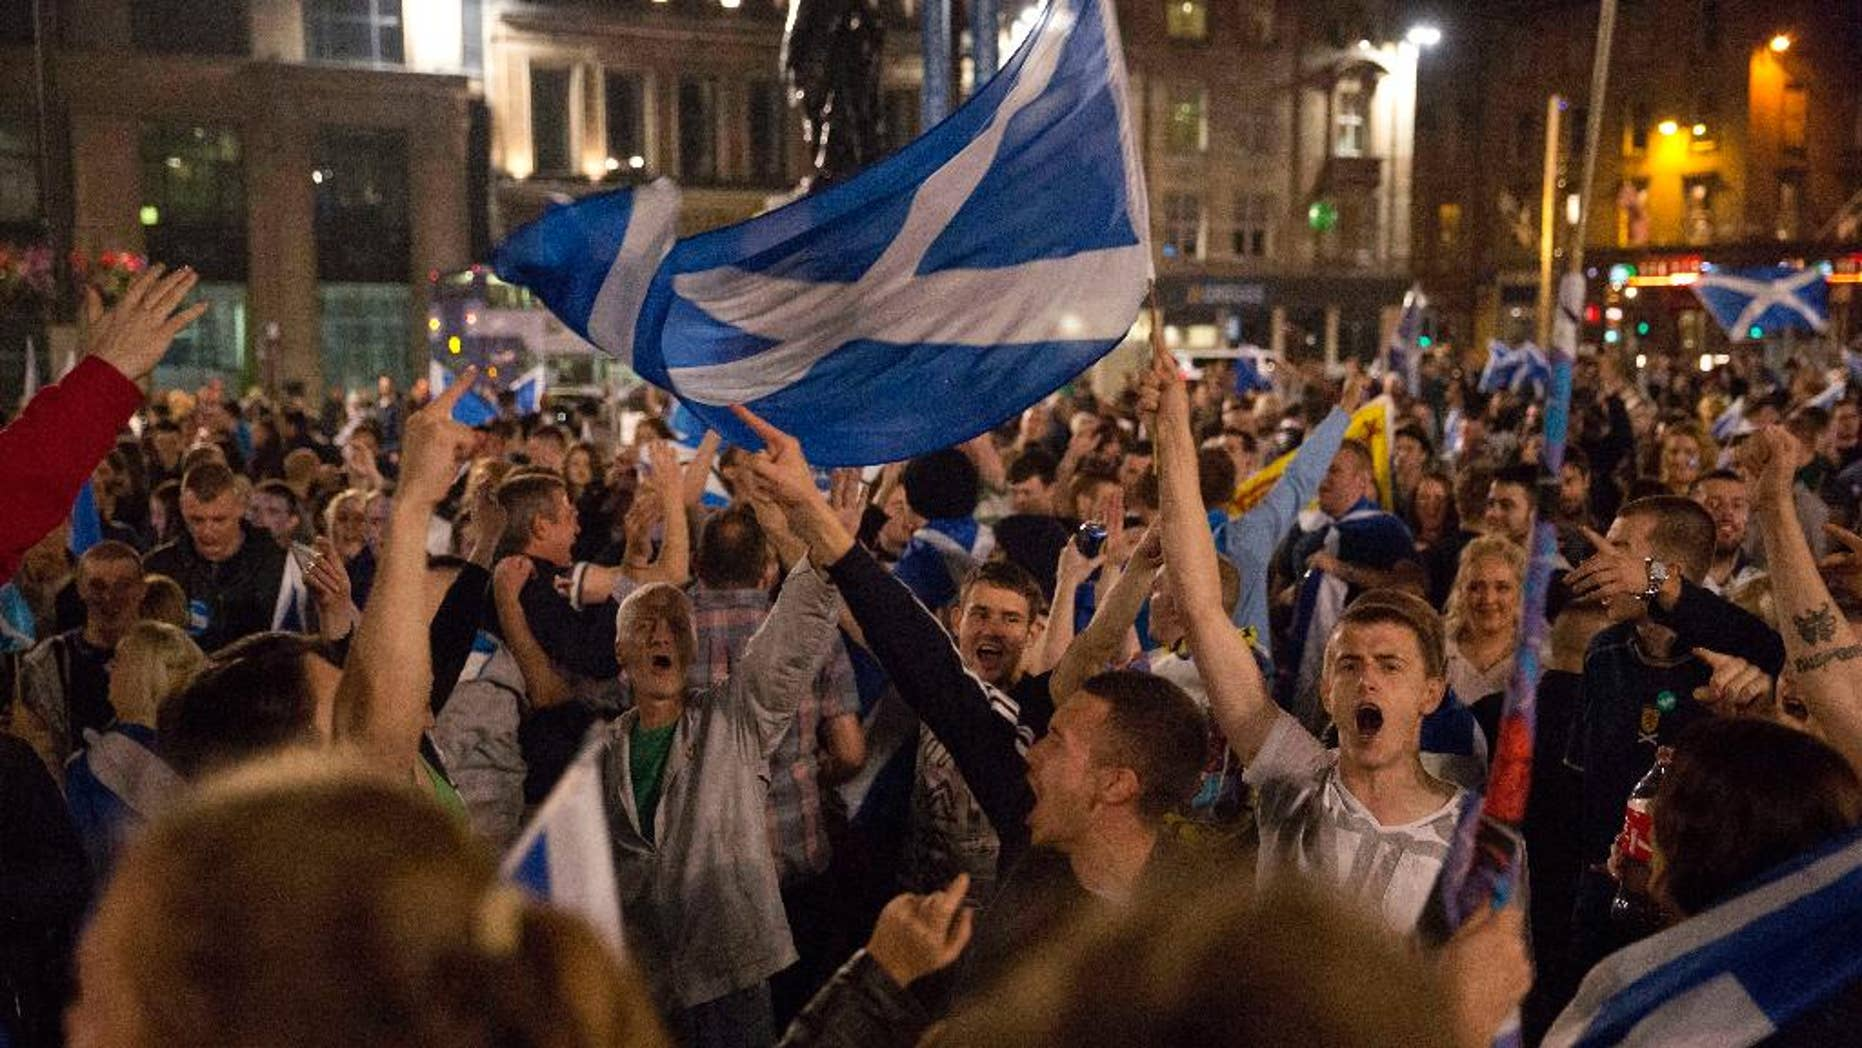 FILE - In this Thursday, Sept. 18, 2014 file photo, supporters of the Yes campaign in the Scottish independence referendum cheer with Scottish Saltire flags as they await the result after the polls closed, in George Square, Glasgow, Scotland. Why Vote Again? Scottish voters decided in a 2014 referendum that they wanted to keep their ties to the U.K. rather than become an independent country. The vote wasn't particularly close, and it's not clear if sentiments have changed since then. (AP Photo/Matt Dunham, File)